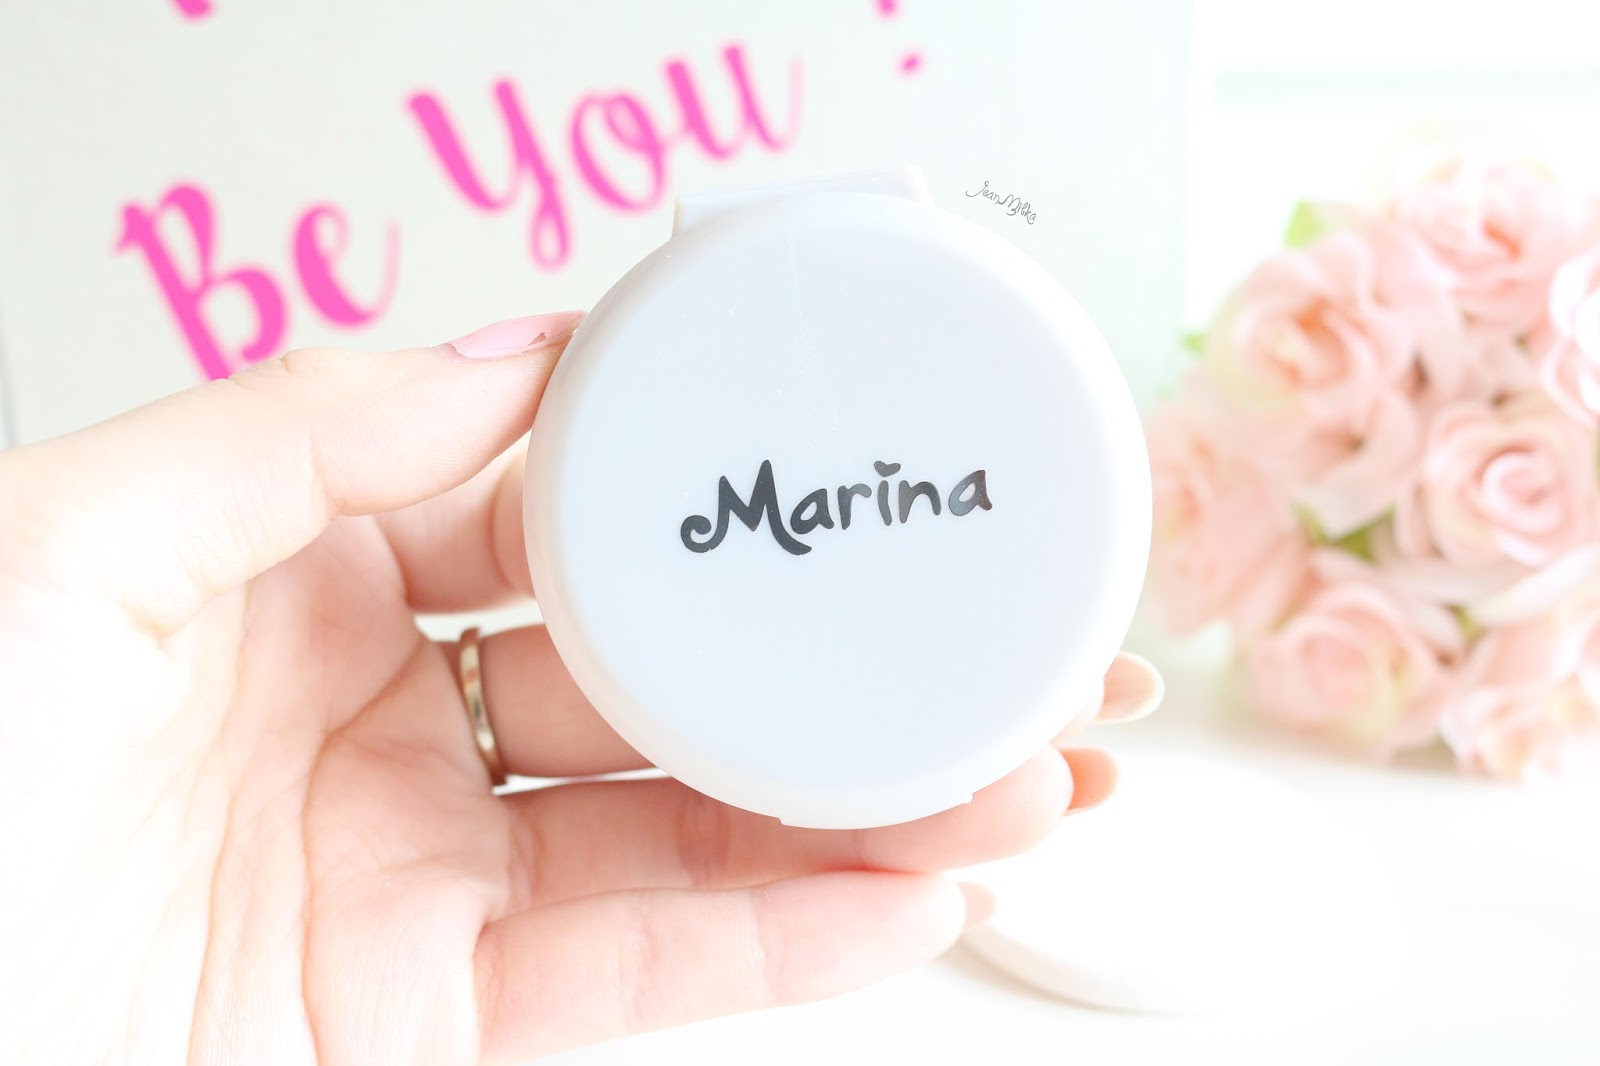 review, marina, marina smooth and glow, bb cream, two way cake, powdery foundation, compact powder, drugstore, makeup, makeup murah, smooth and glow uv, saatnya bersinar, powdery foundation, marina powdery foundation